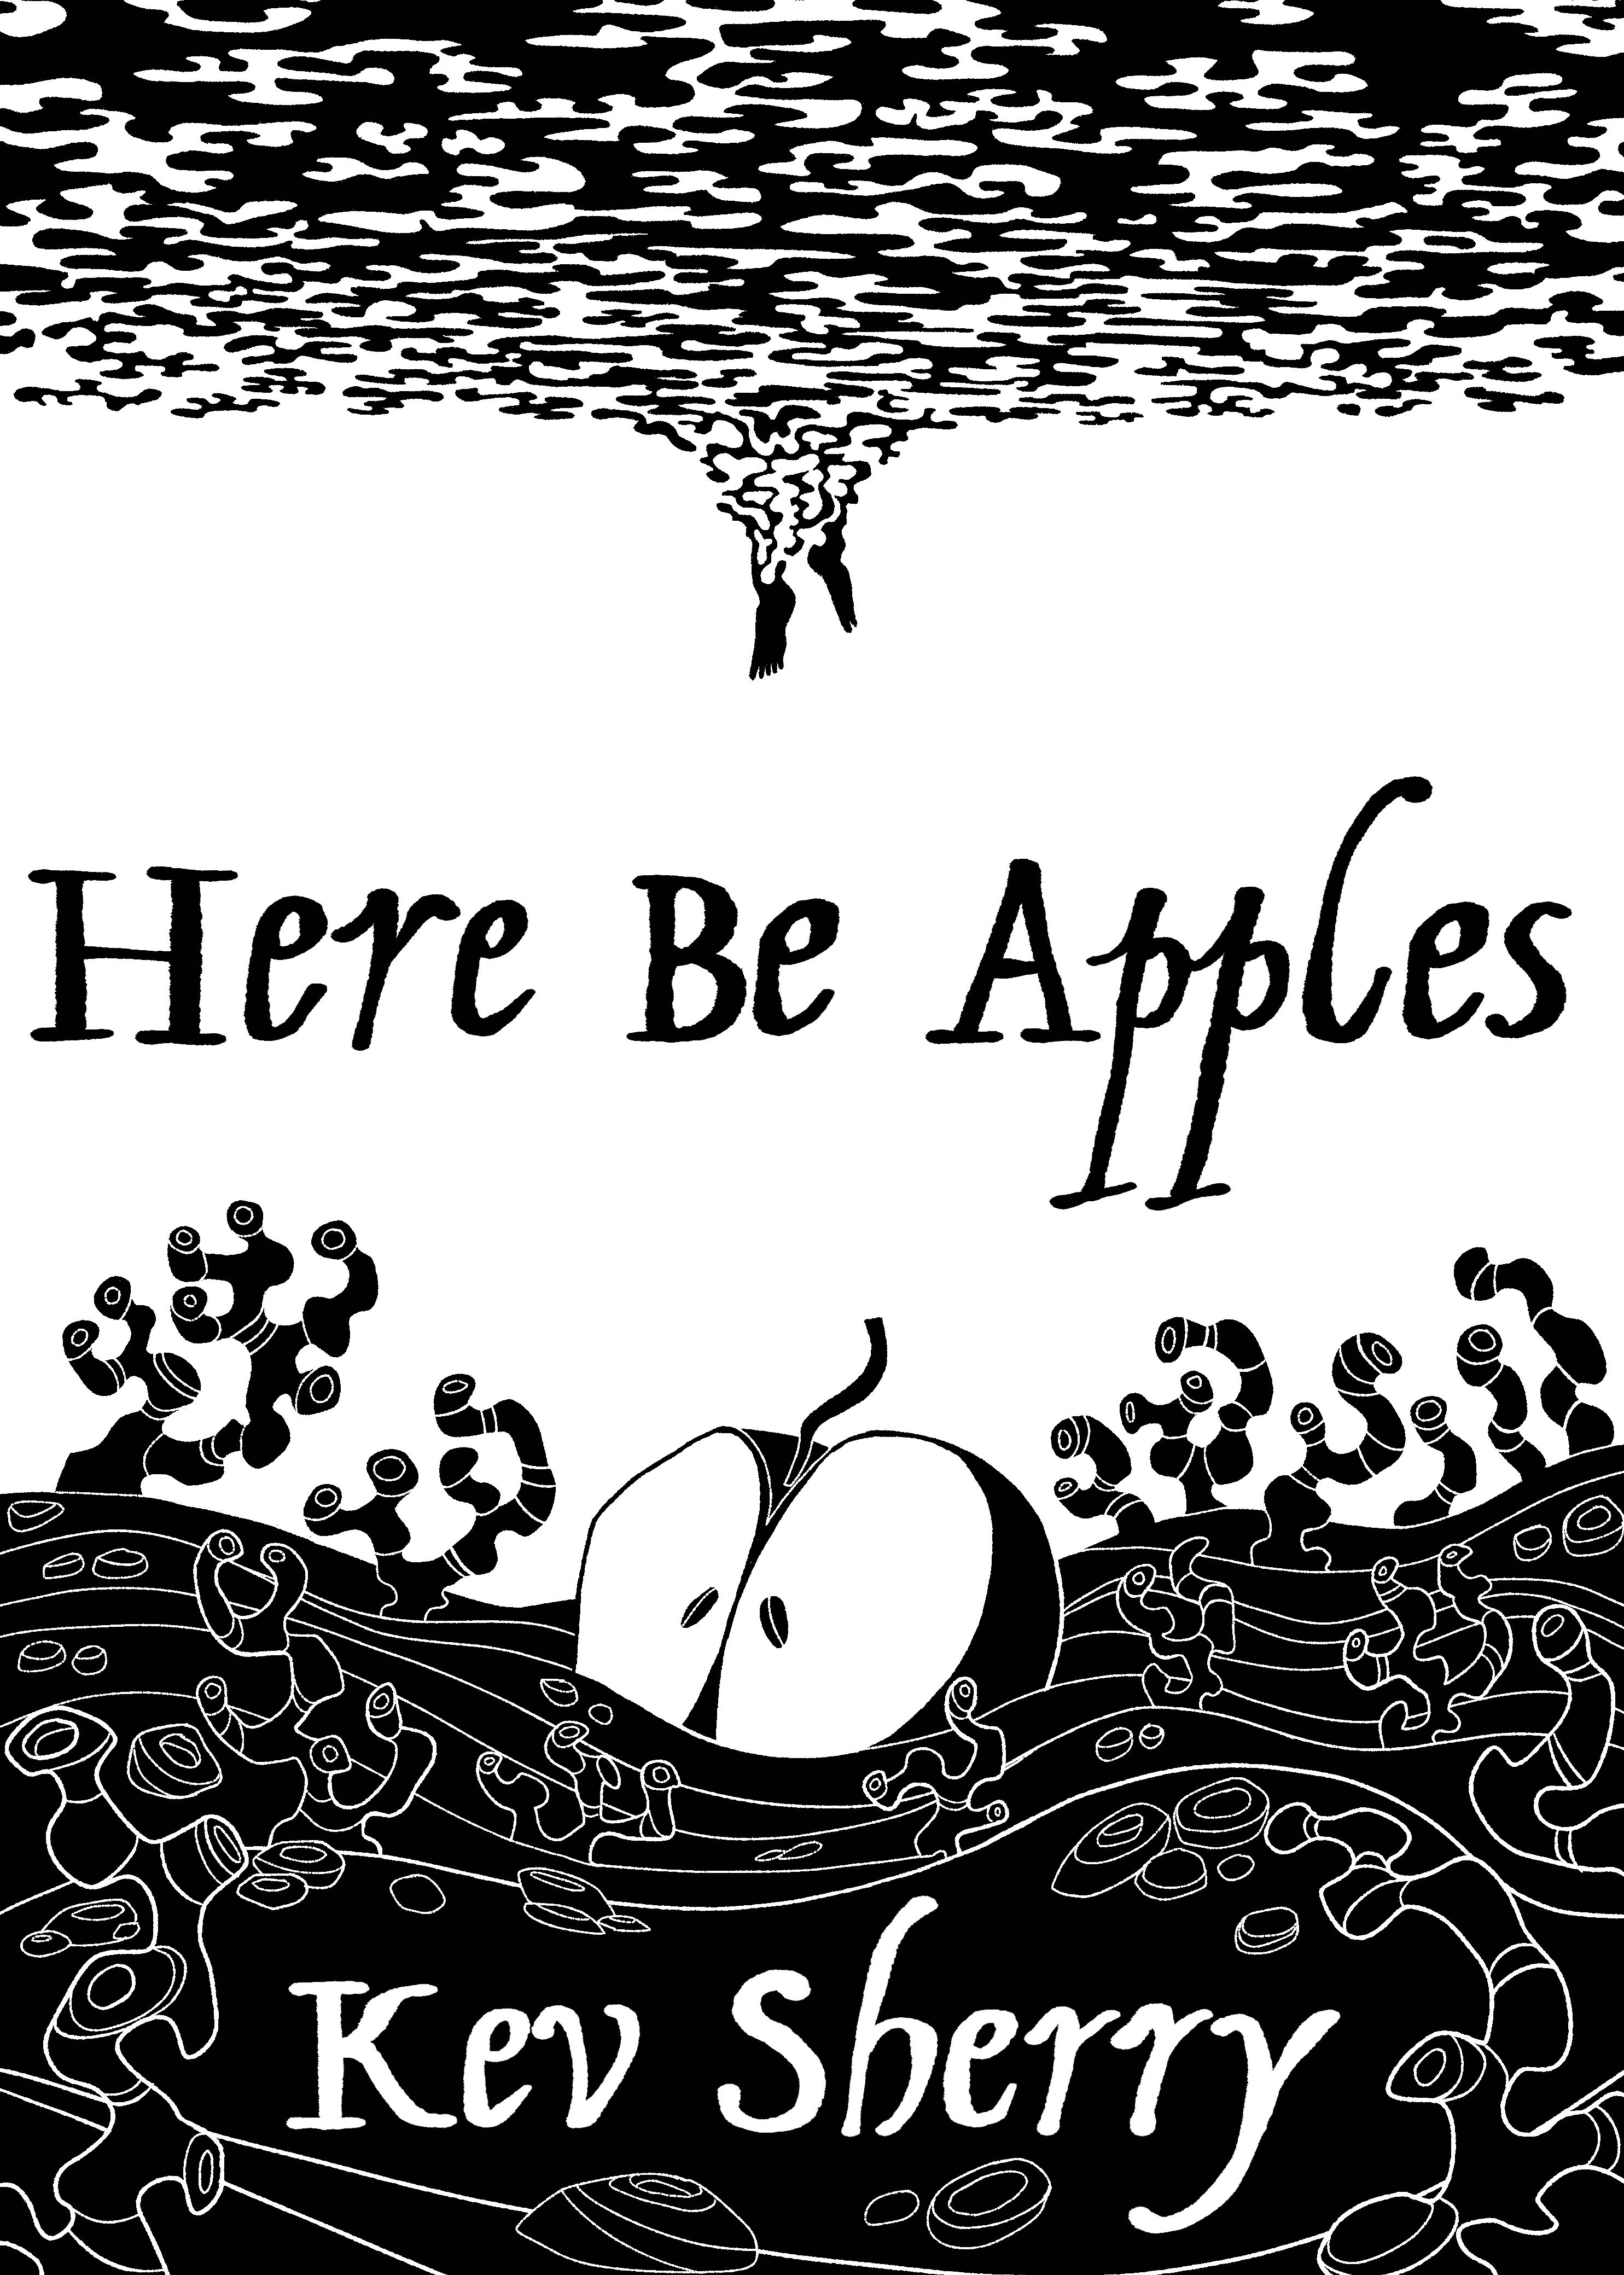 HERE BE APPLES cover artwork